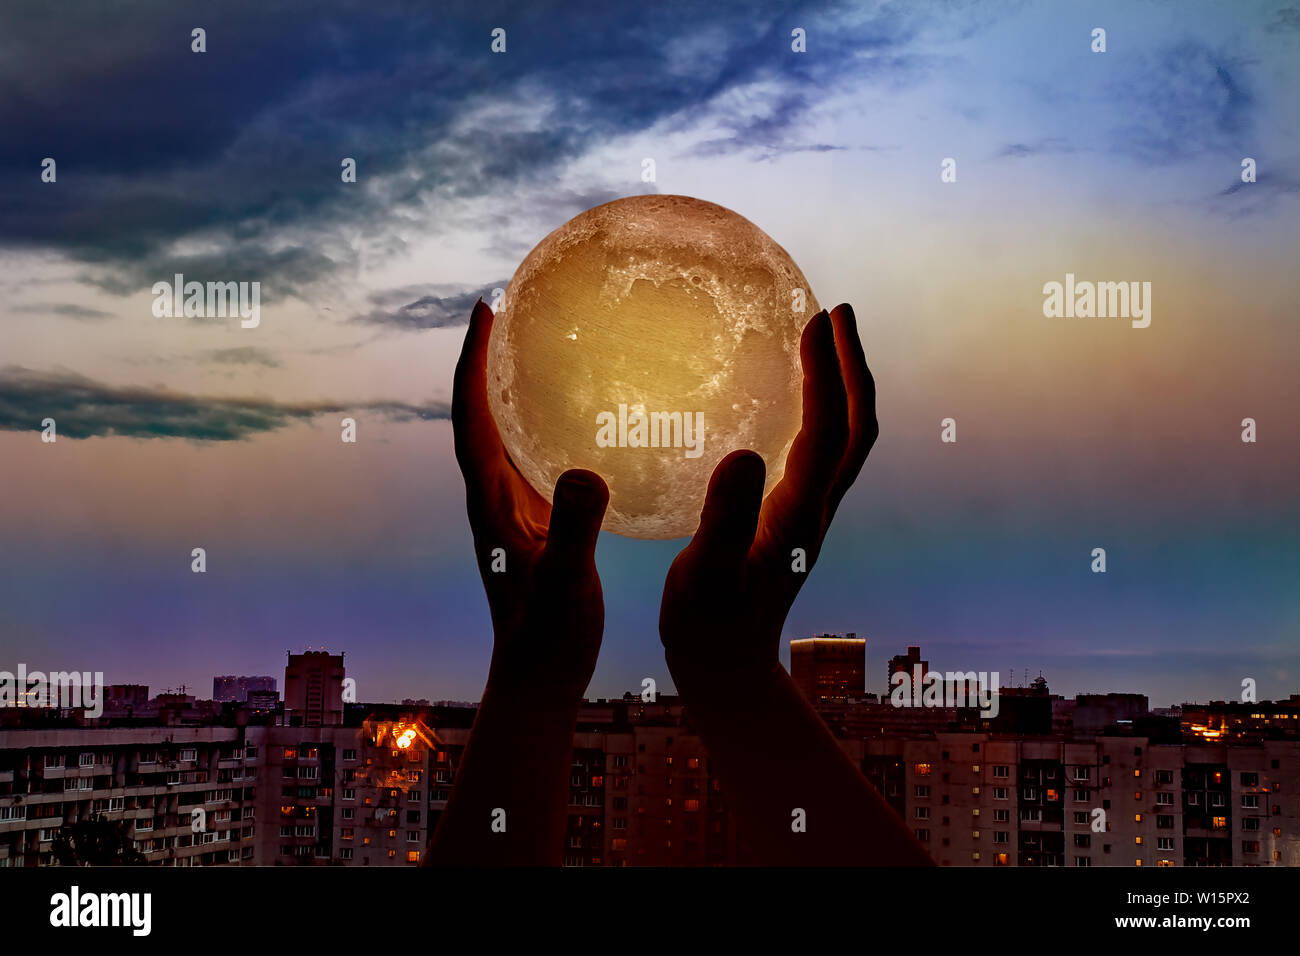 The moon in hands on the background of night city - Stock Image